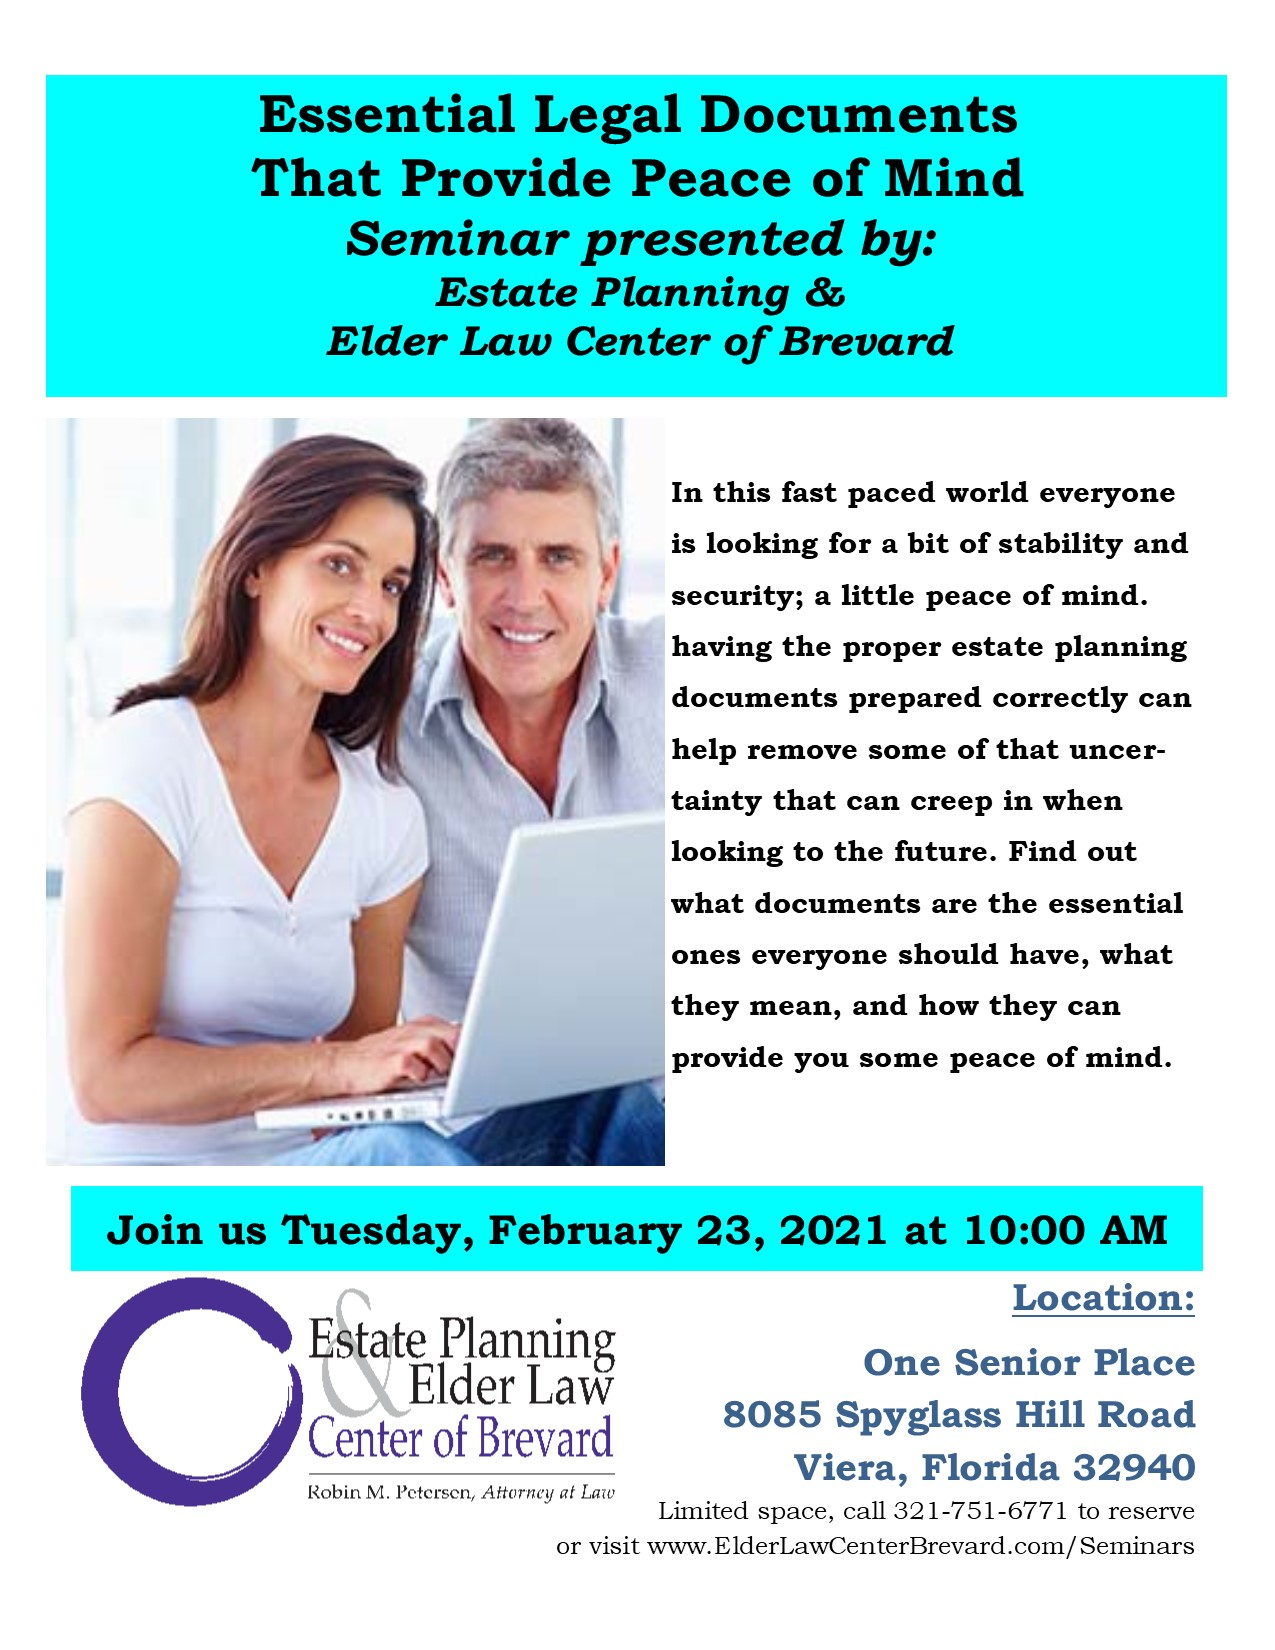 Essential Legal Documents That Provide Peace of Mind presented by Estate Planning and Elder Law Center of Brevard